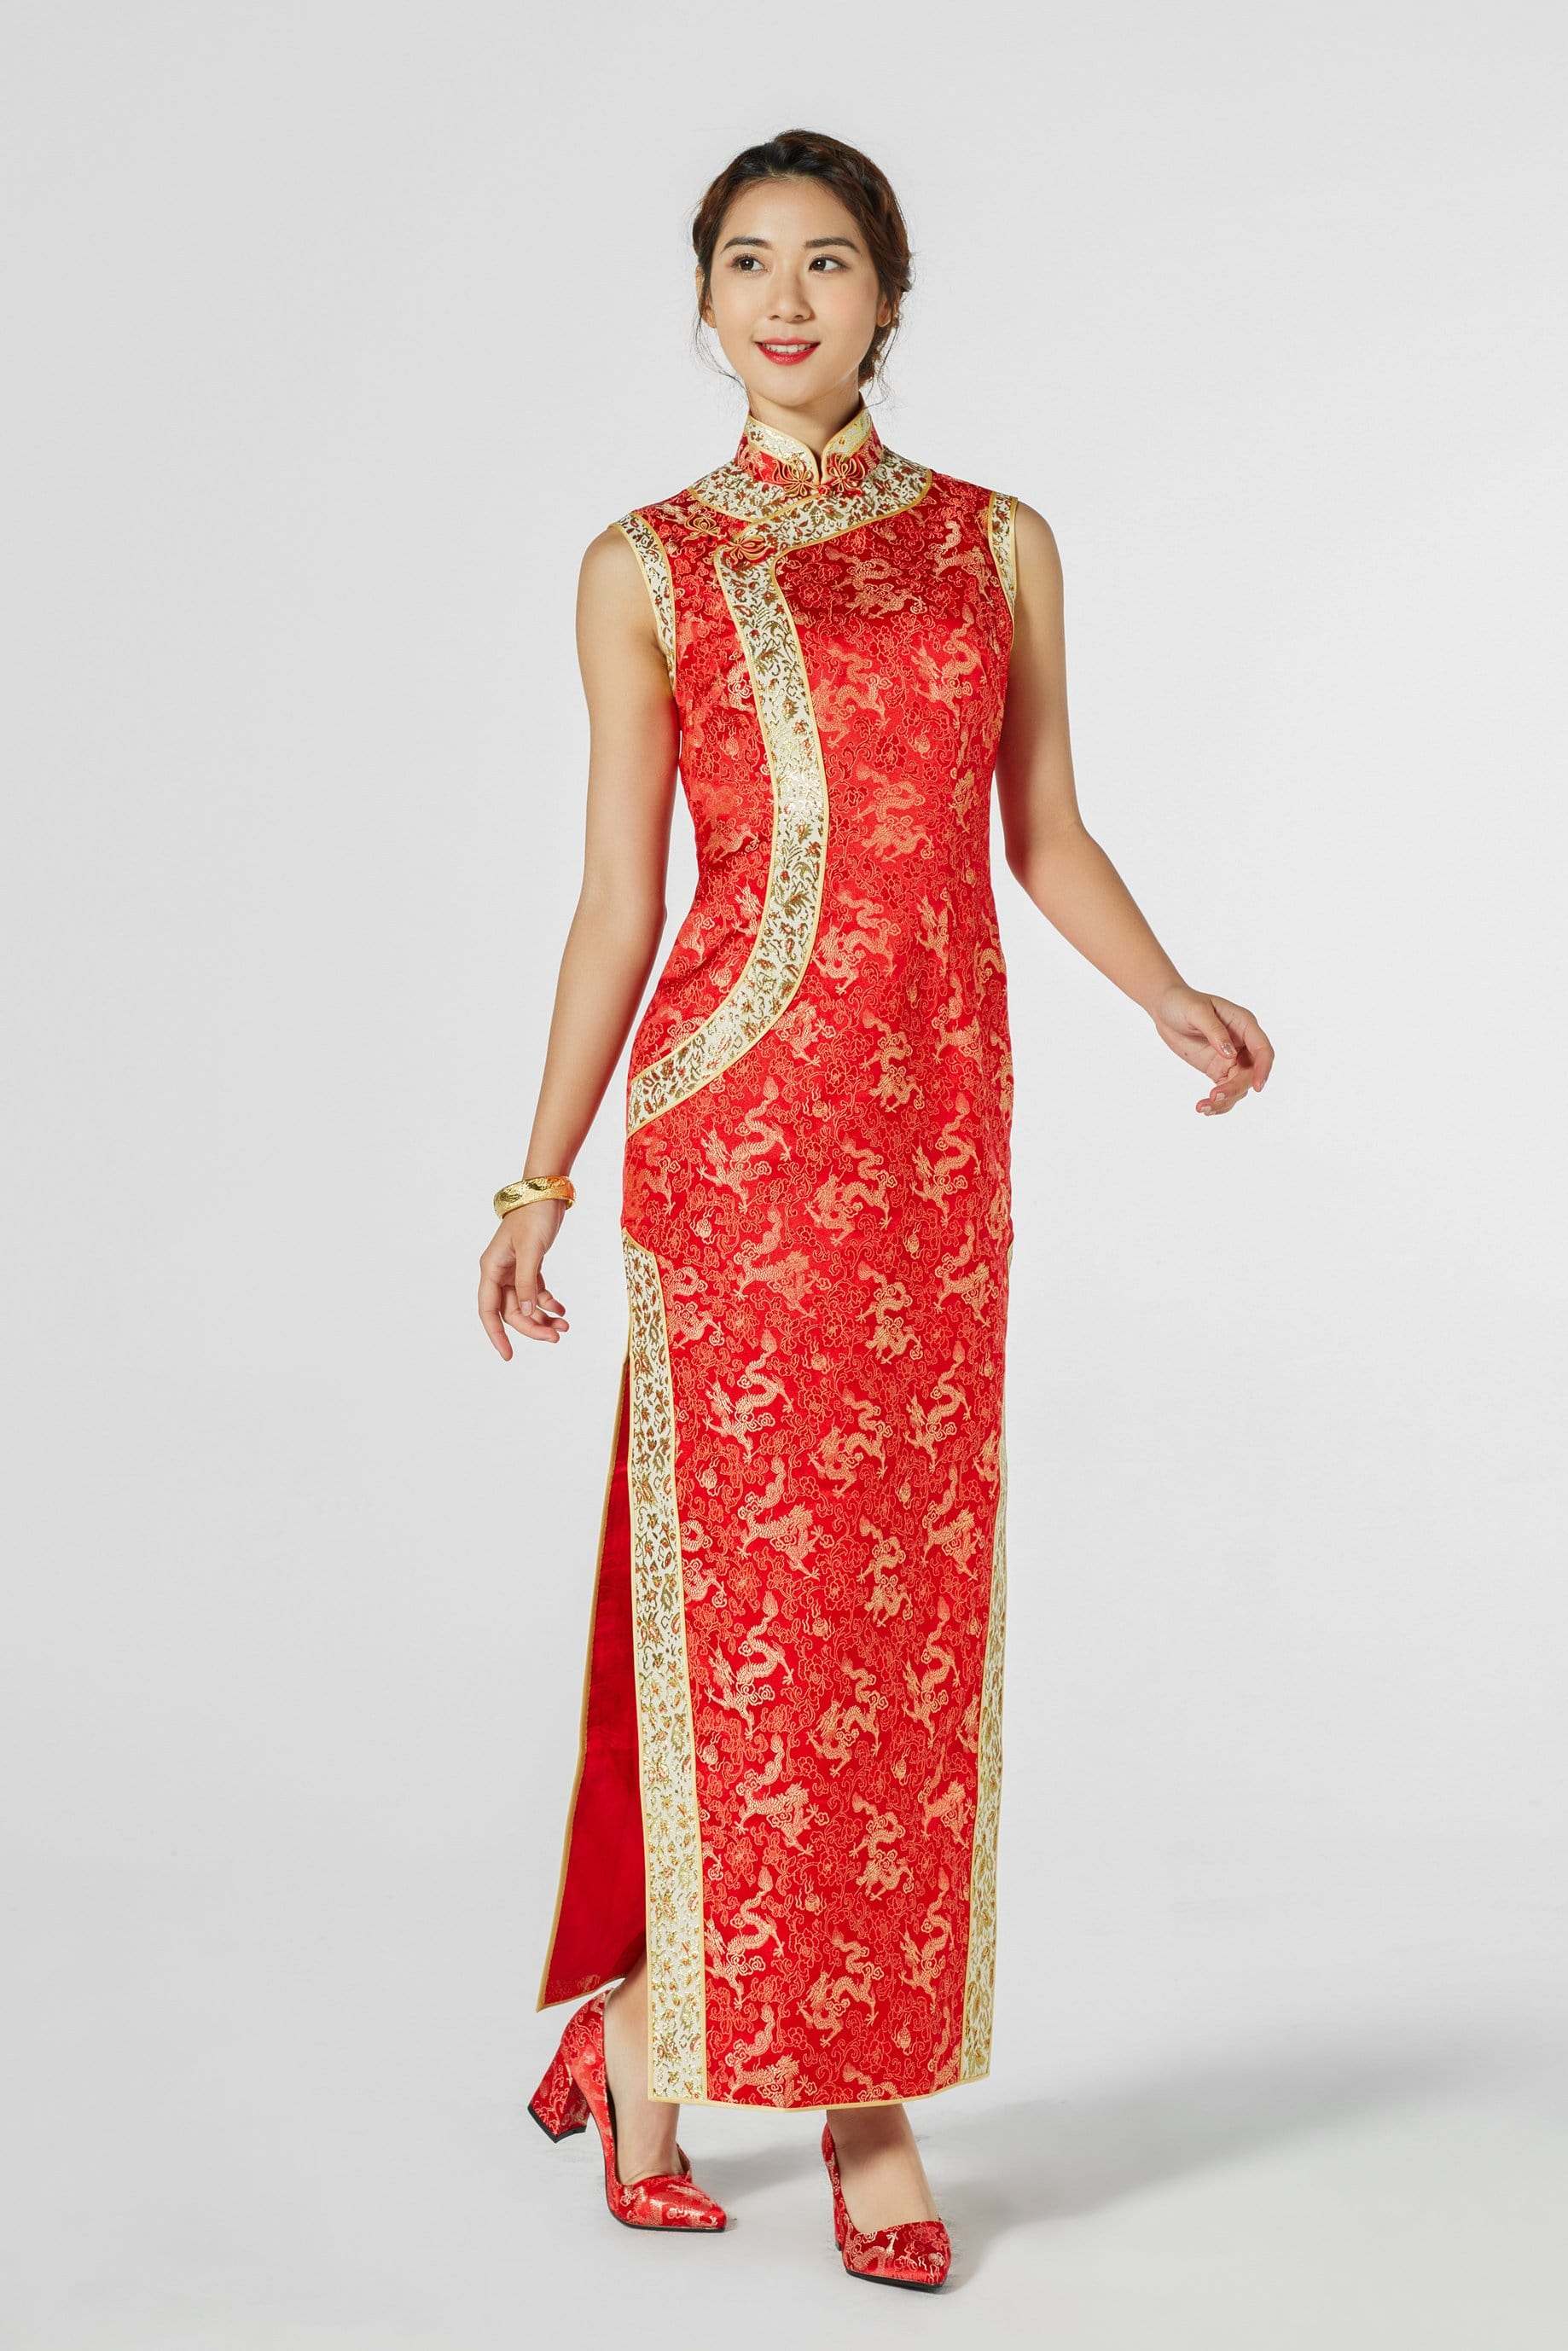 Jessica Bespoke Dress - Cheongsam - East Meets Dress